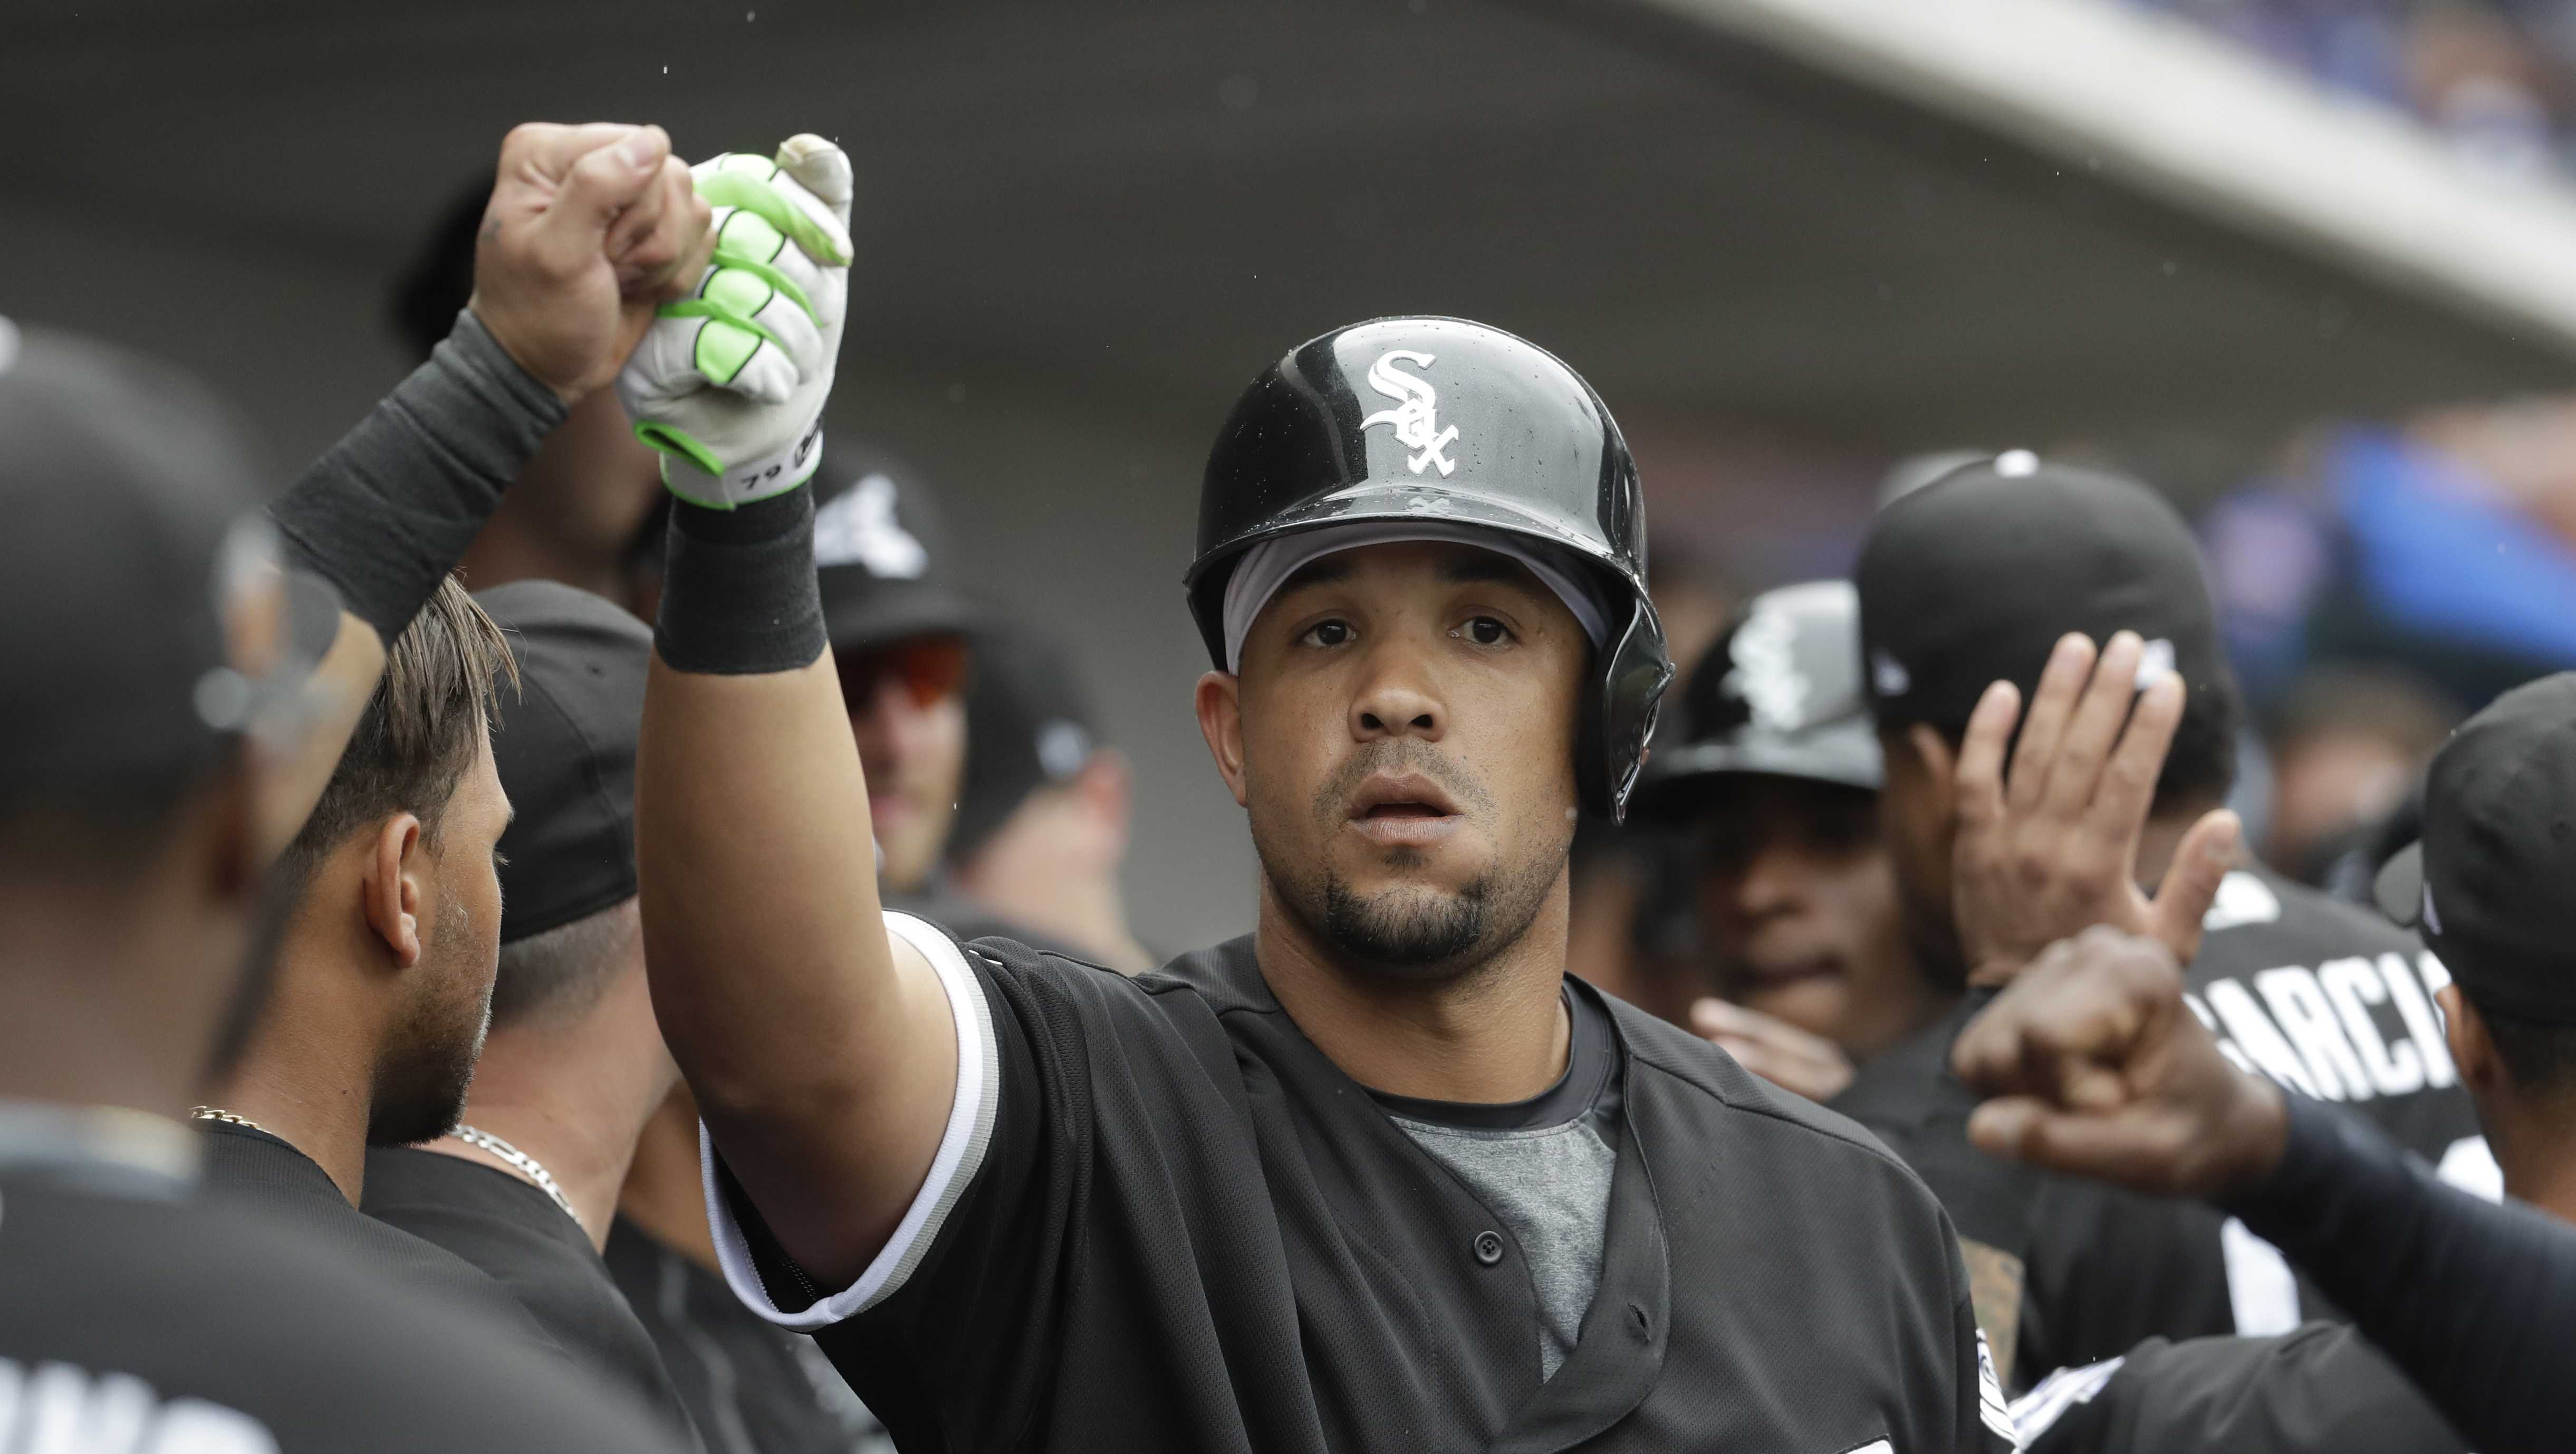 Chicago White Sox's Jose Abreu is congratulated after hitting a two-run home run during the fifth inning a spring training baseball game against the Chicago Cubs Monday, Feb. 27, 2017, in Mesa, Ariz.